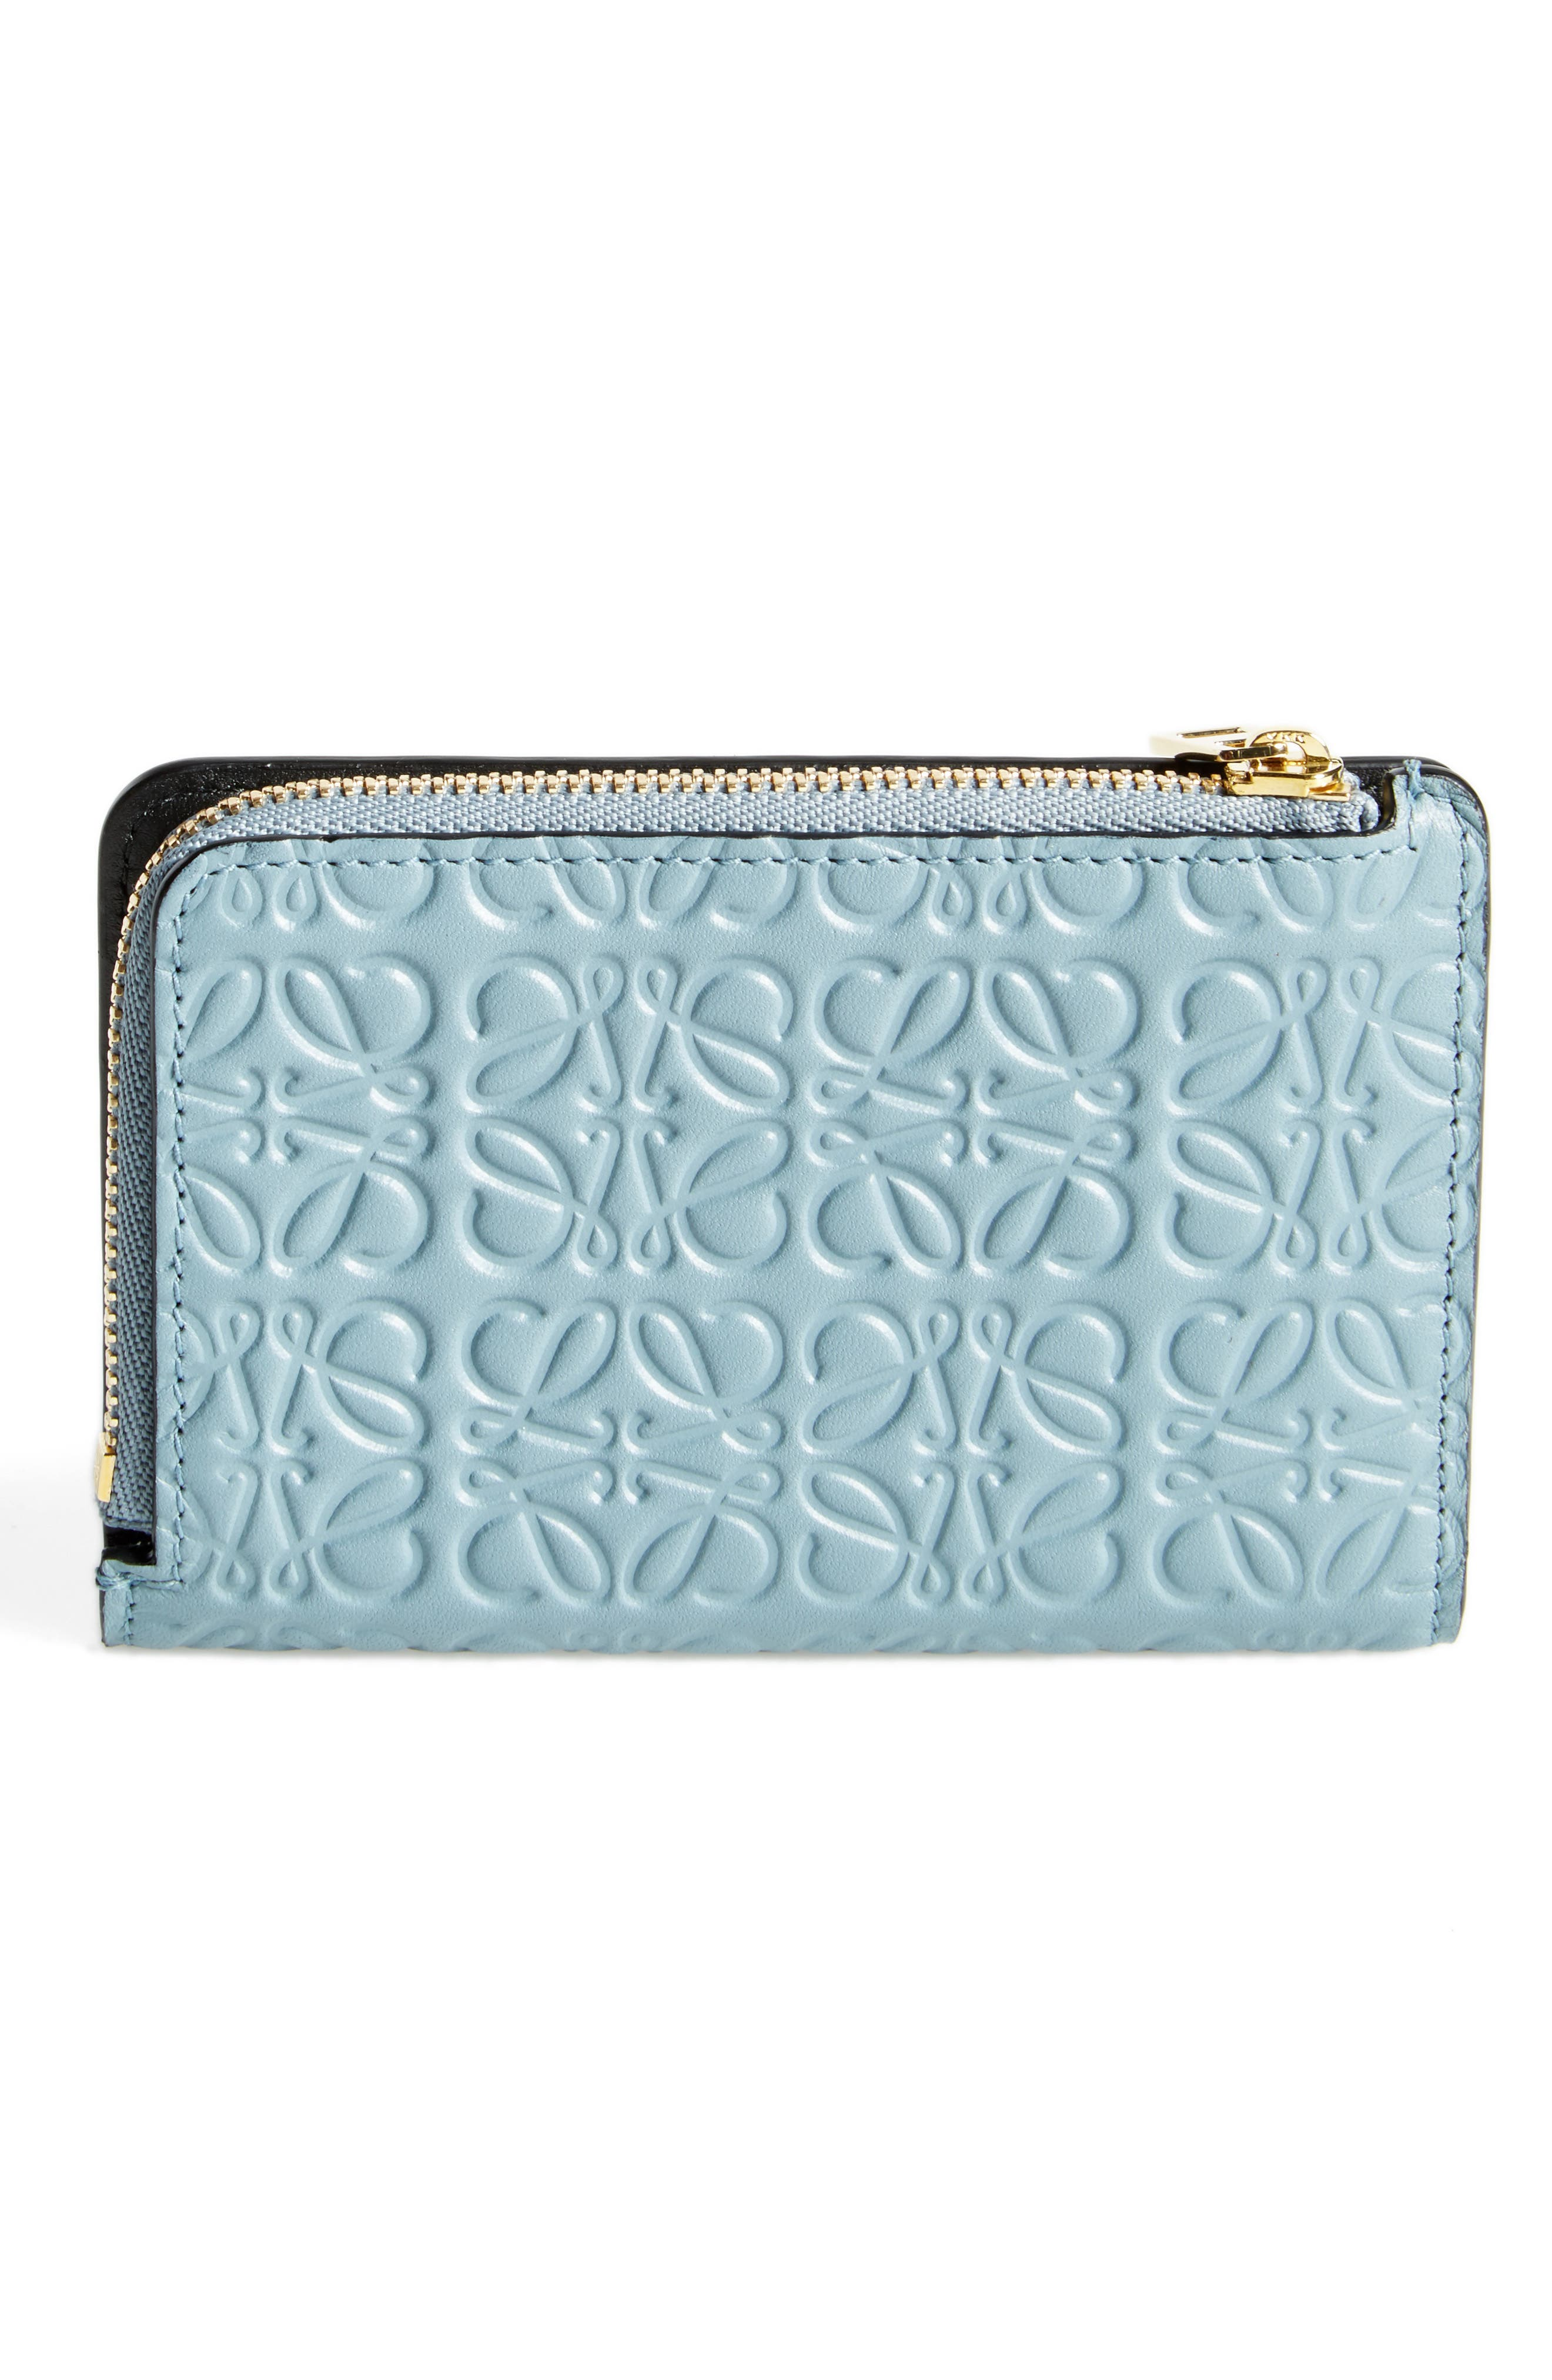 Small Leather Zip Wallet,                             Alternate thumbnail 4, color,                             421